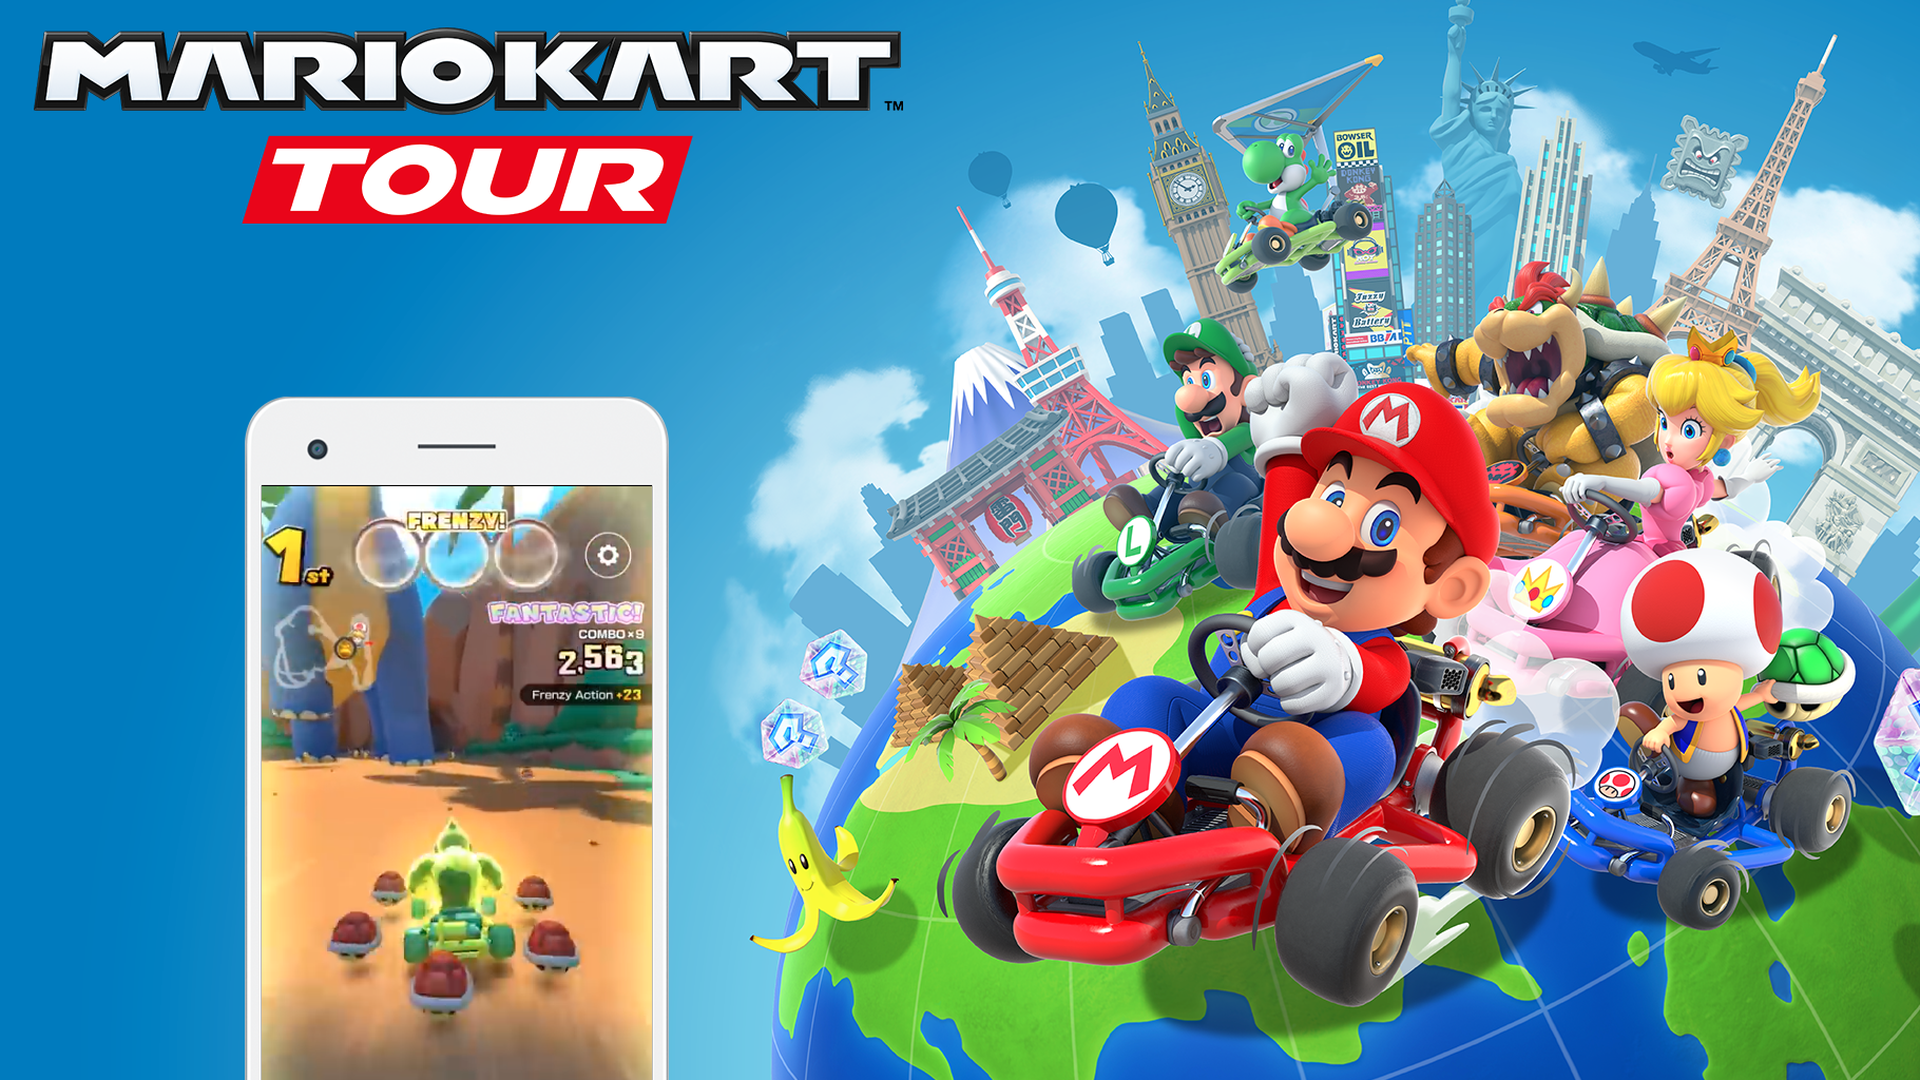 A poster with an iphone playing the Mario Kart game and Mario on the side of the phone.